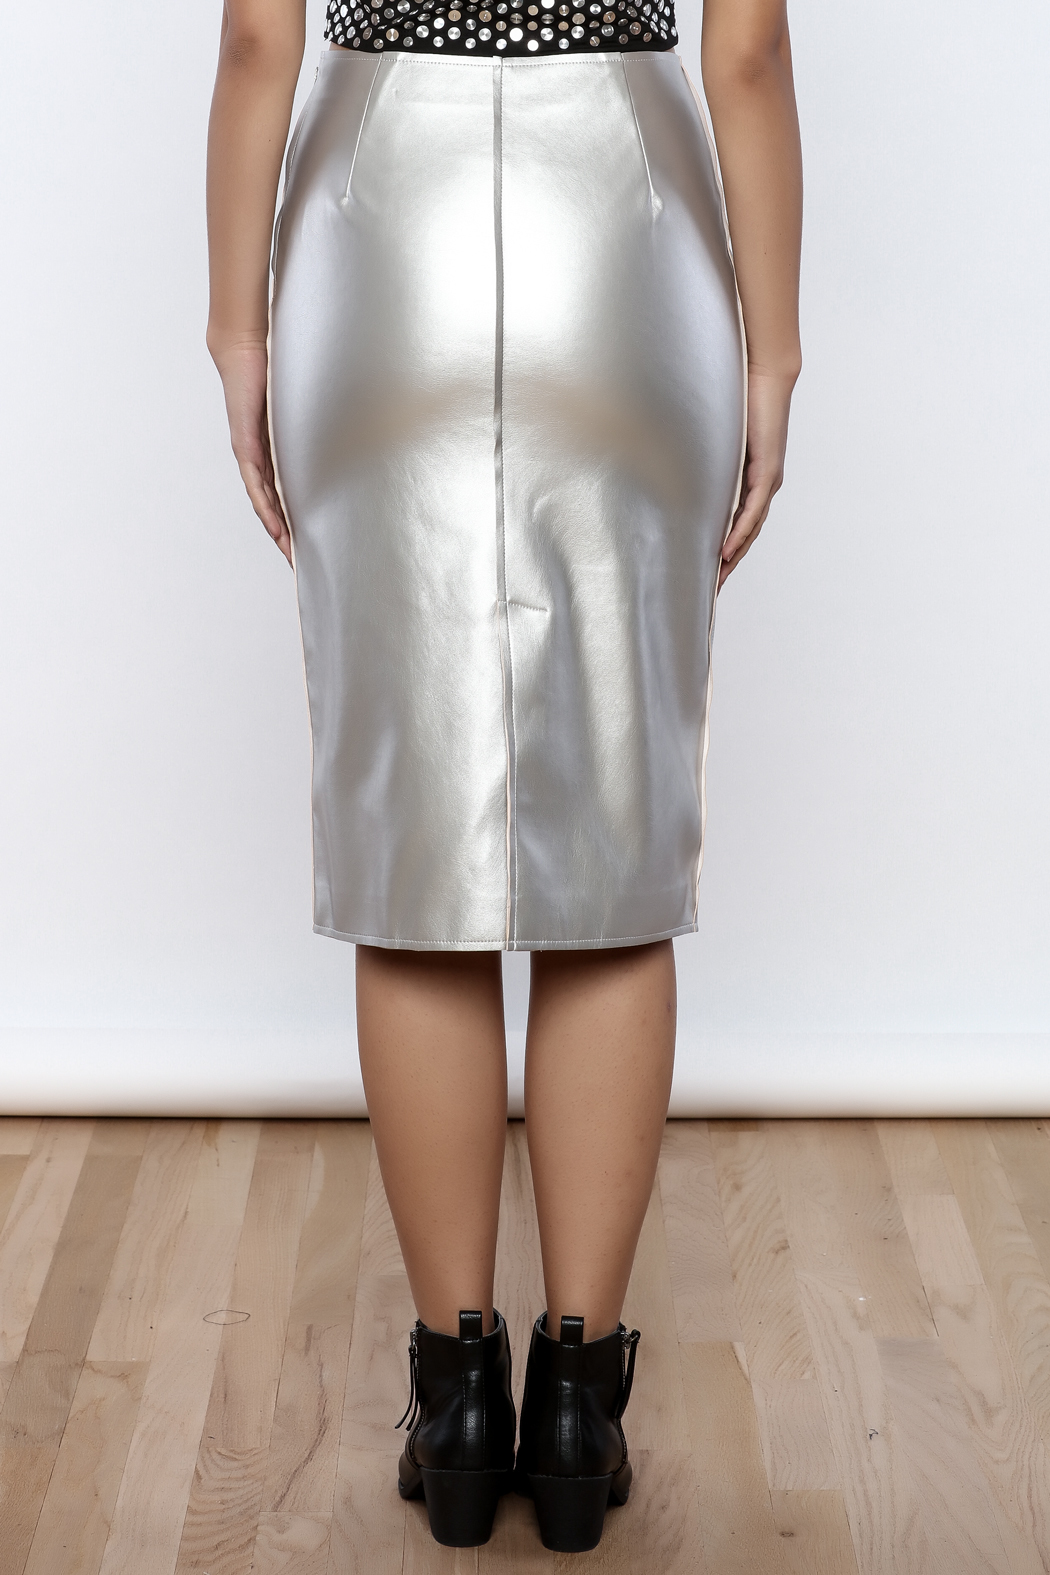 J.O.A. FAux Leather Pencil Skirt - Back Cropped Image